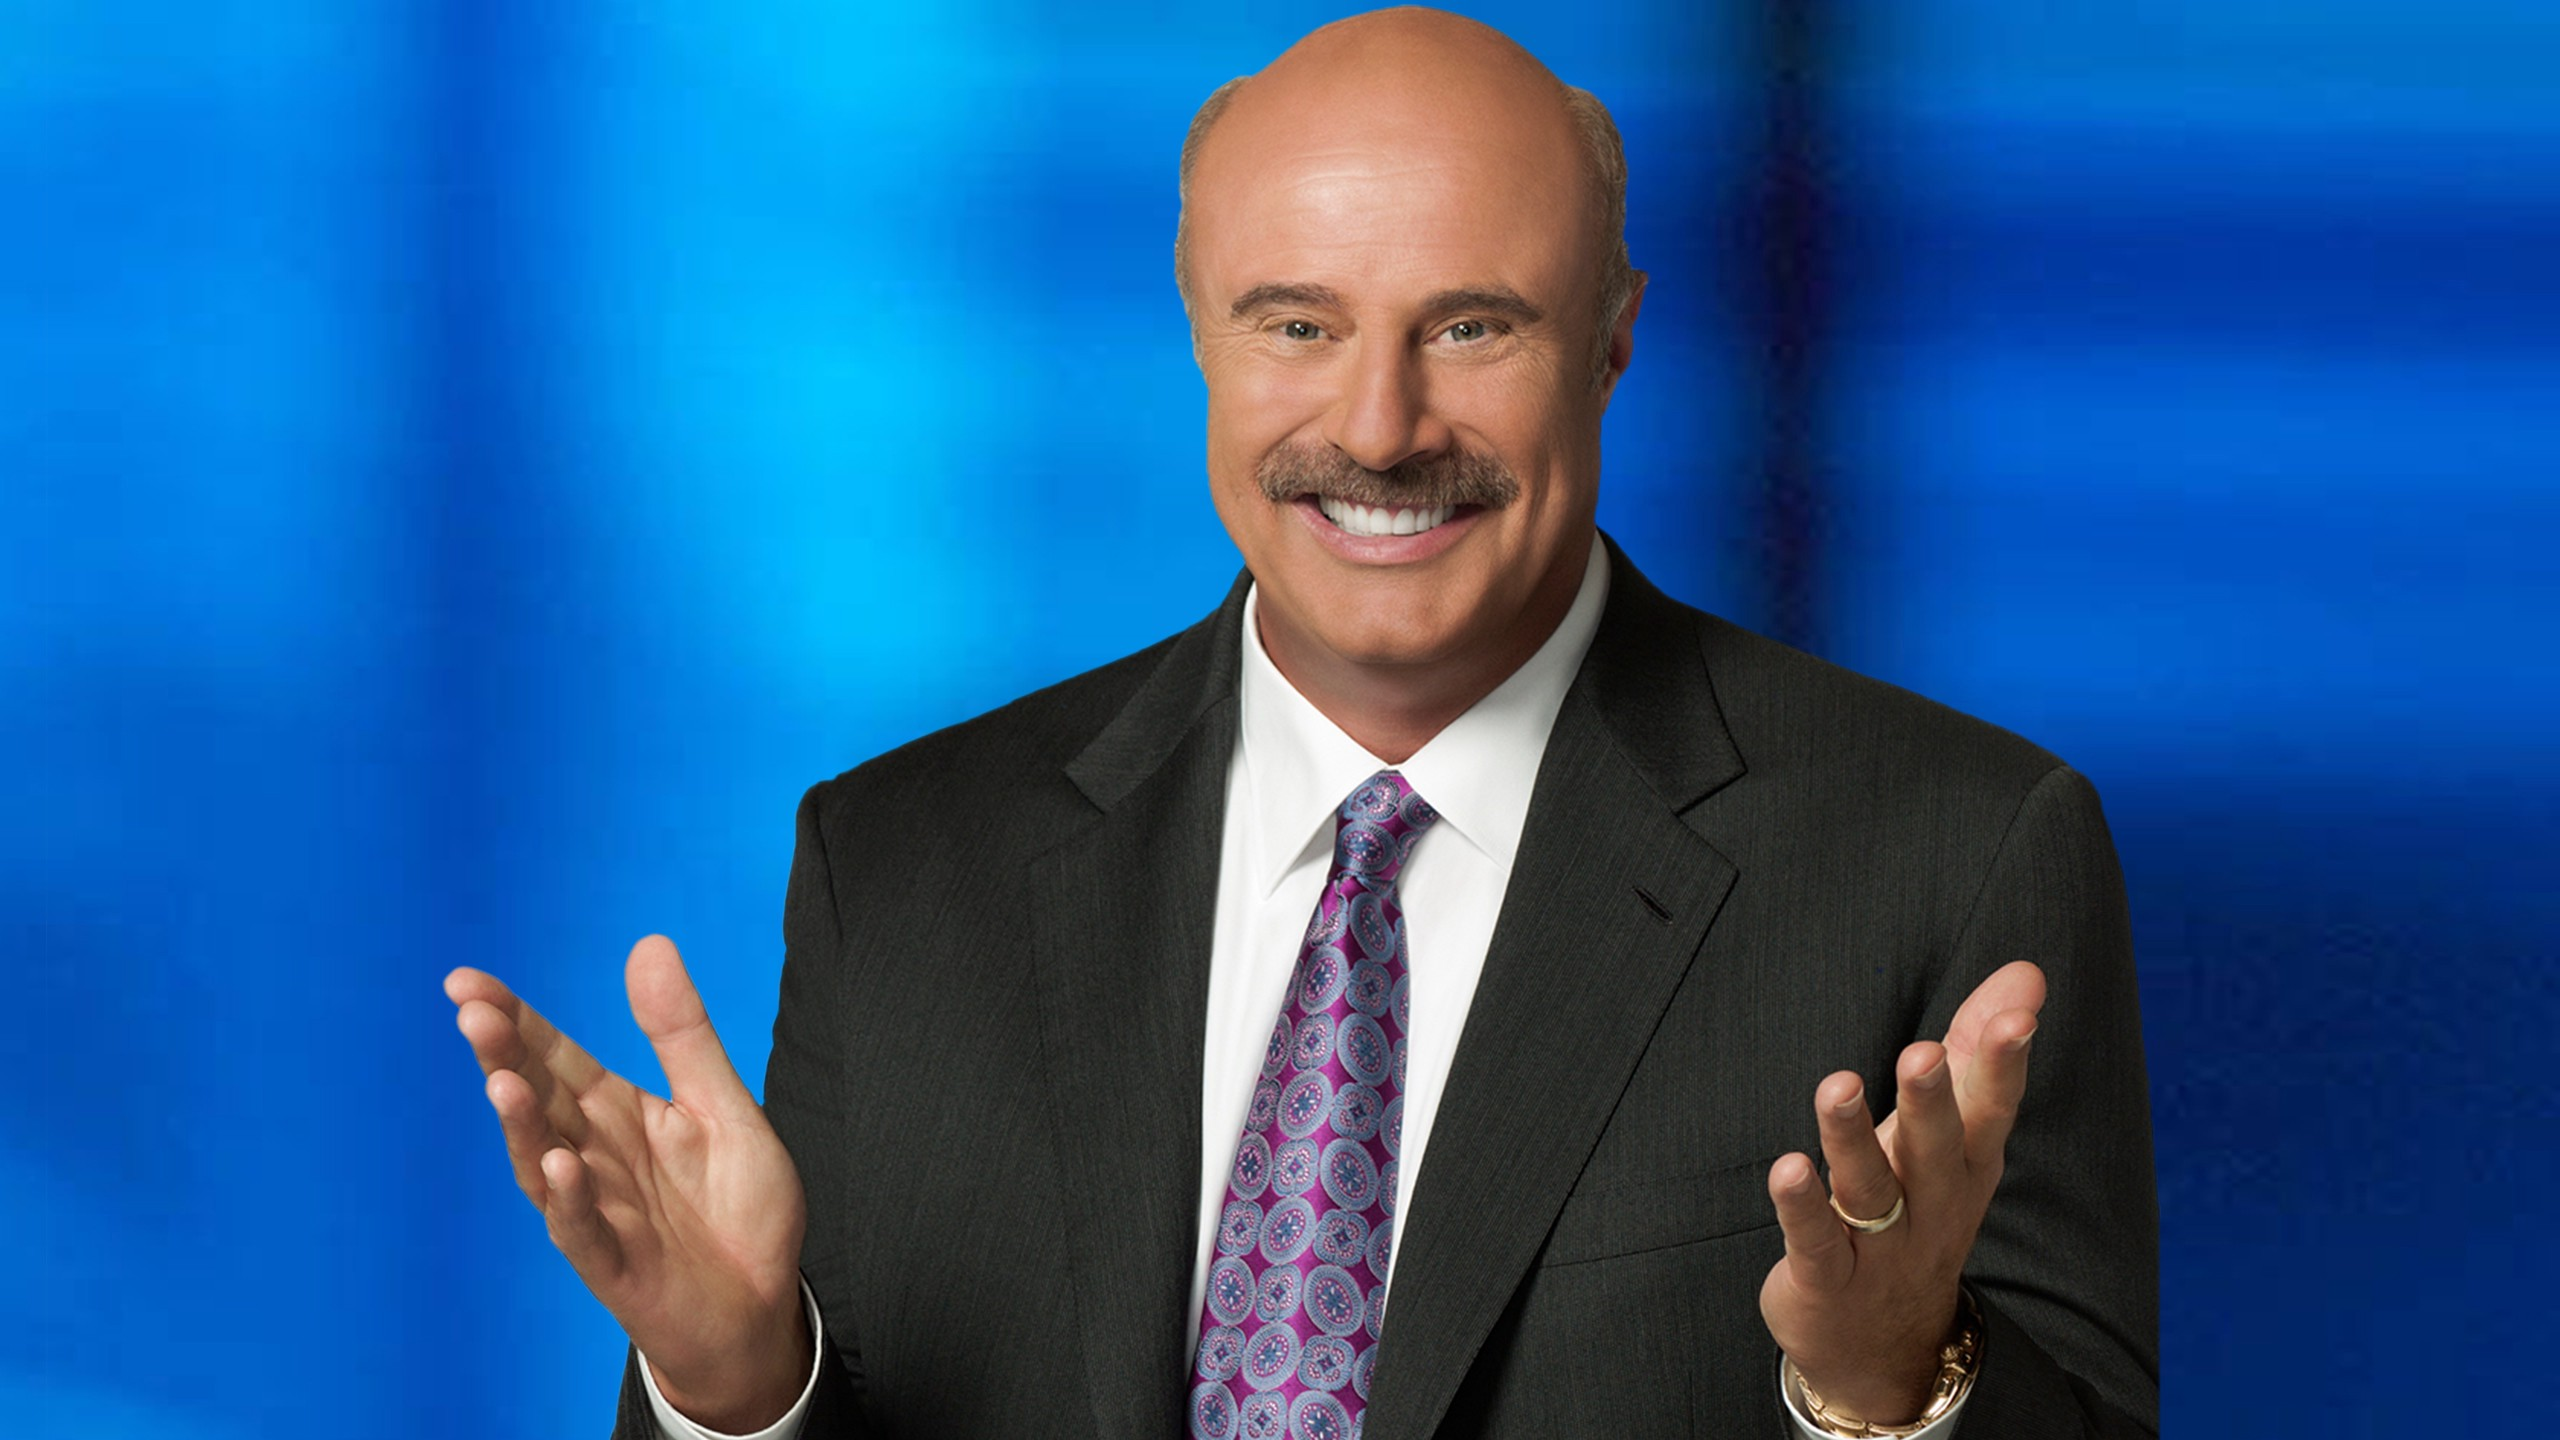 Dr. Phil Biography, Facts & Life Story Updated 2021